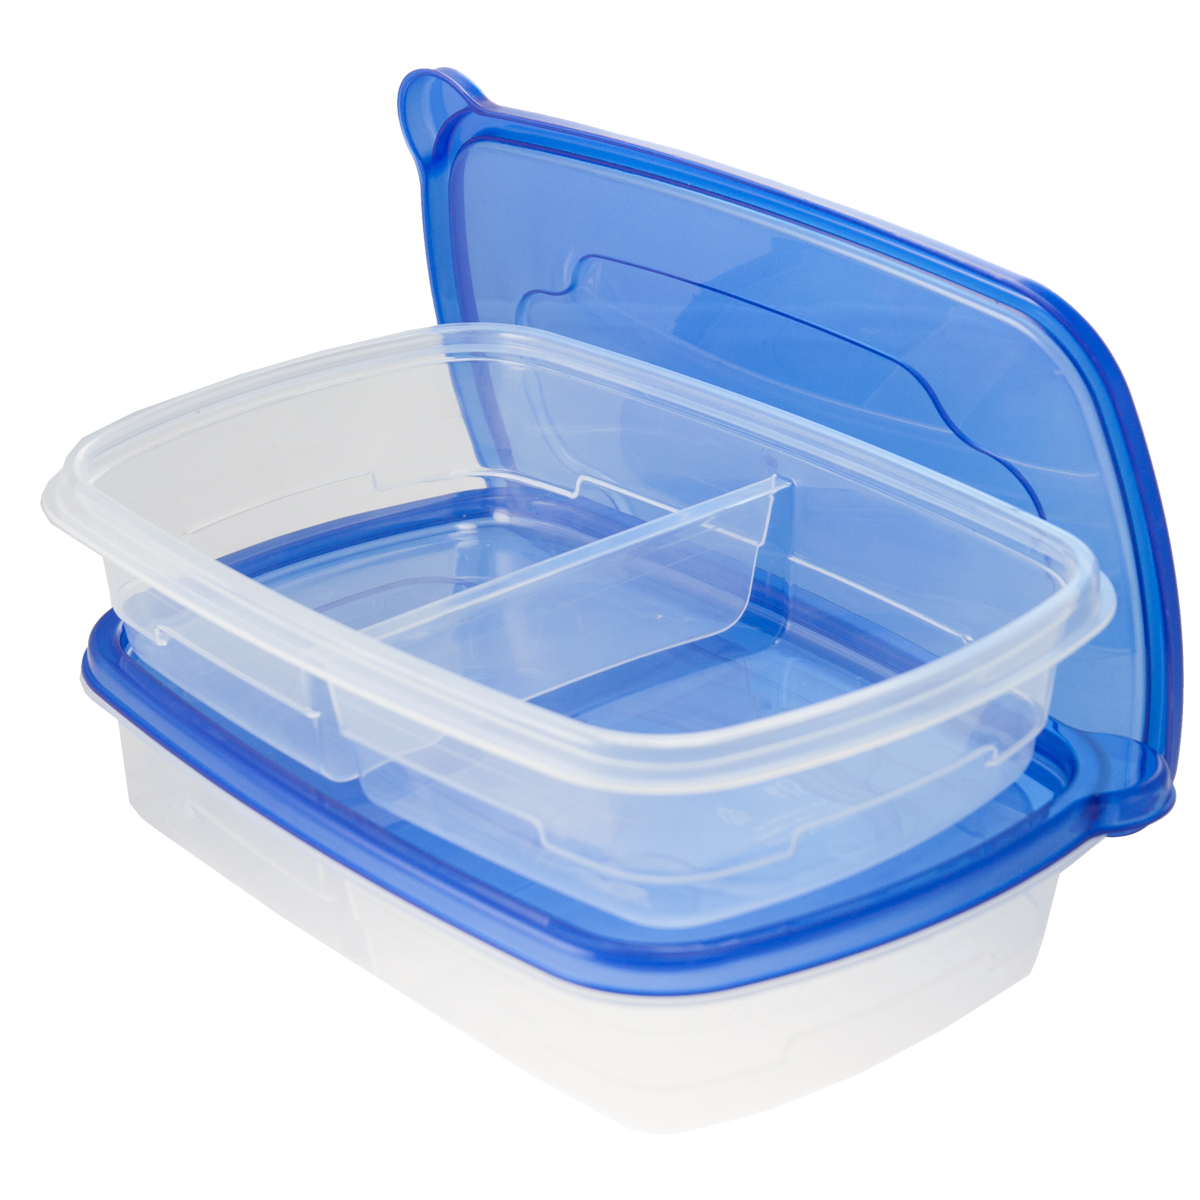 8pc BPA Free Food Storage Container Lunch Airtight With Divider Kitchen Leftover - Walmart.com  sc 1 st  Walmart & 8pc BPA Free Food Storage Container Lunch Airtight With Divider ...